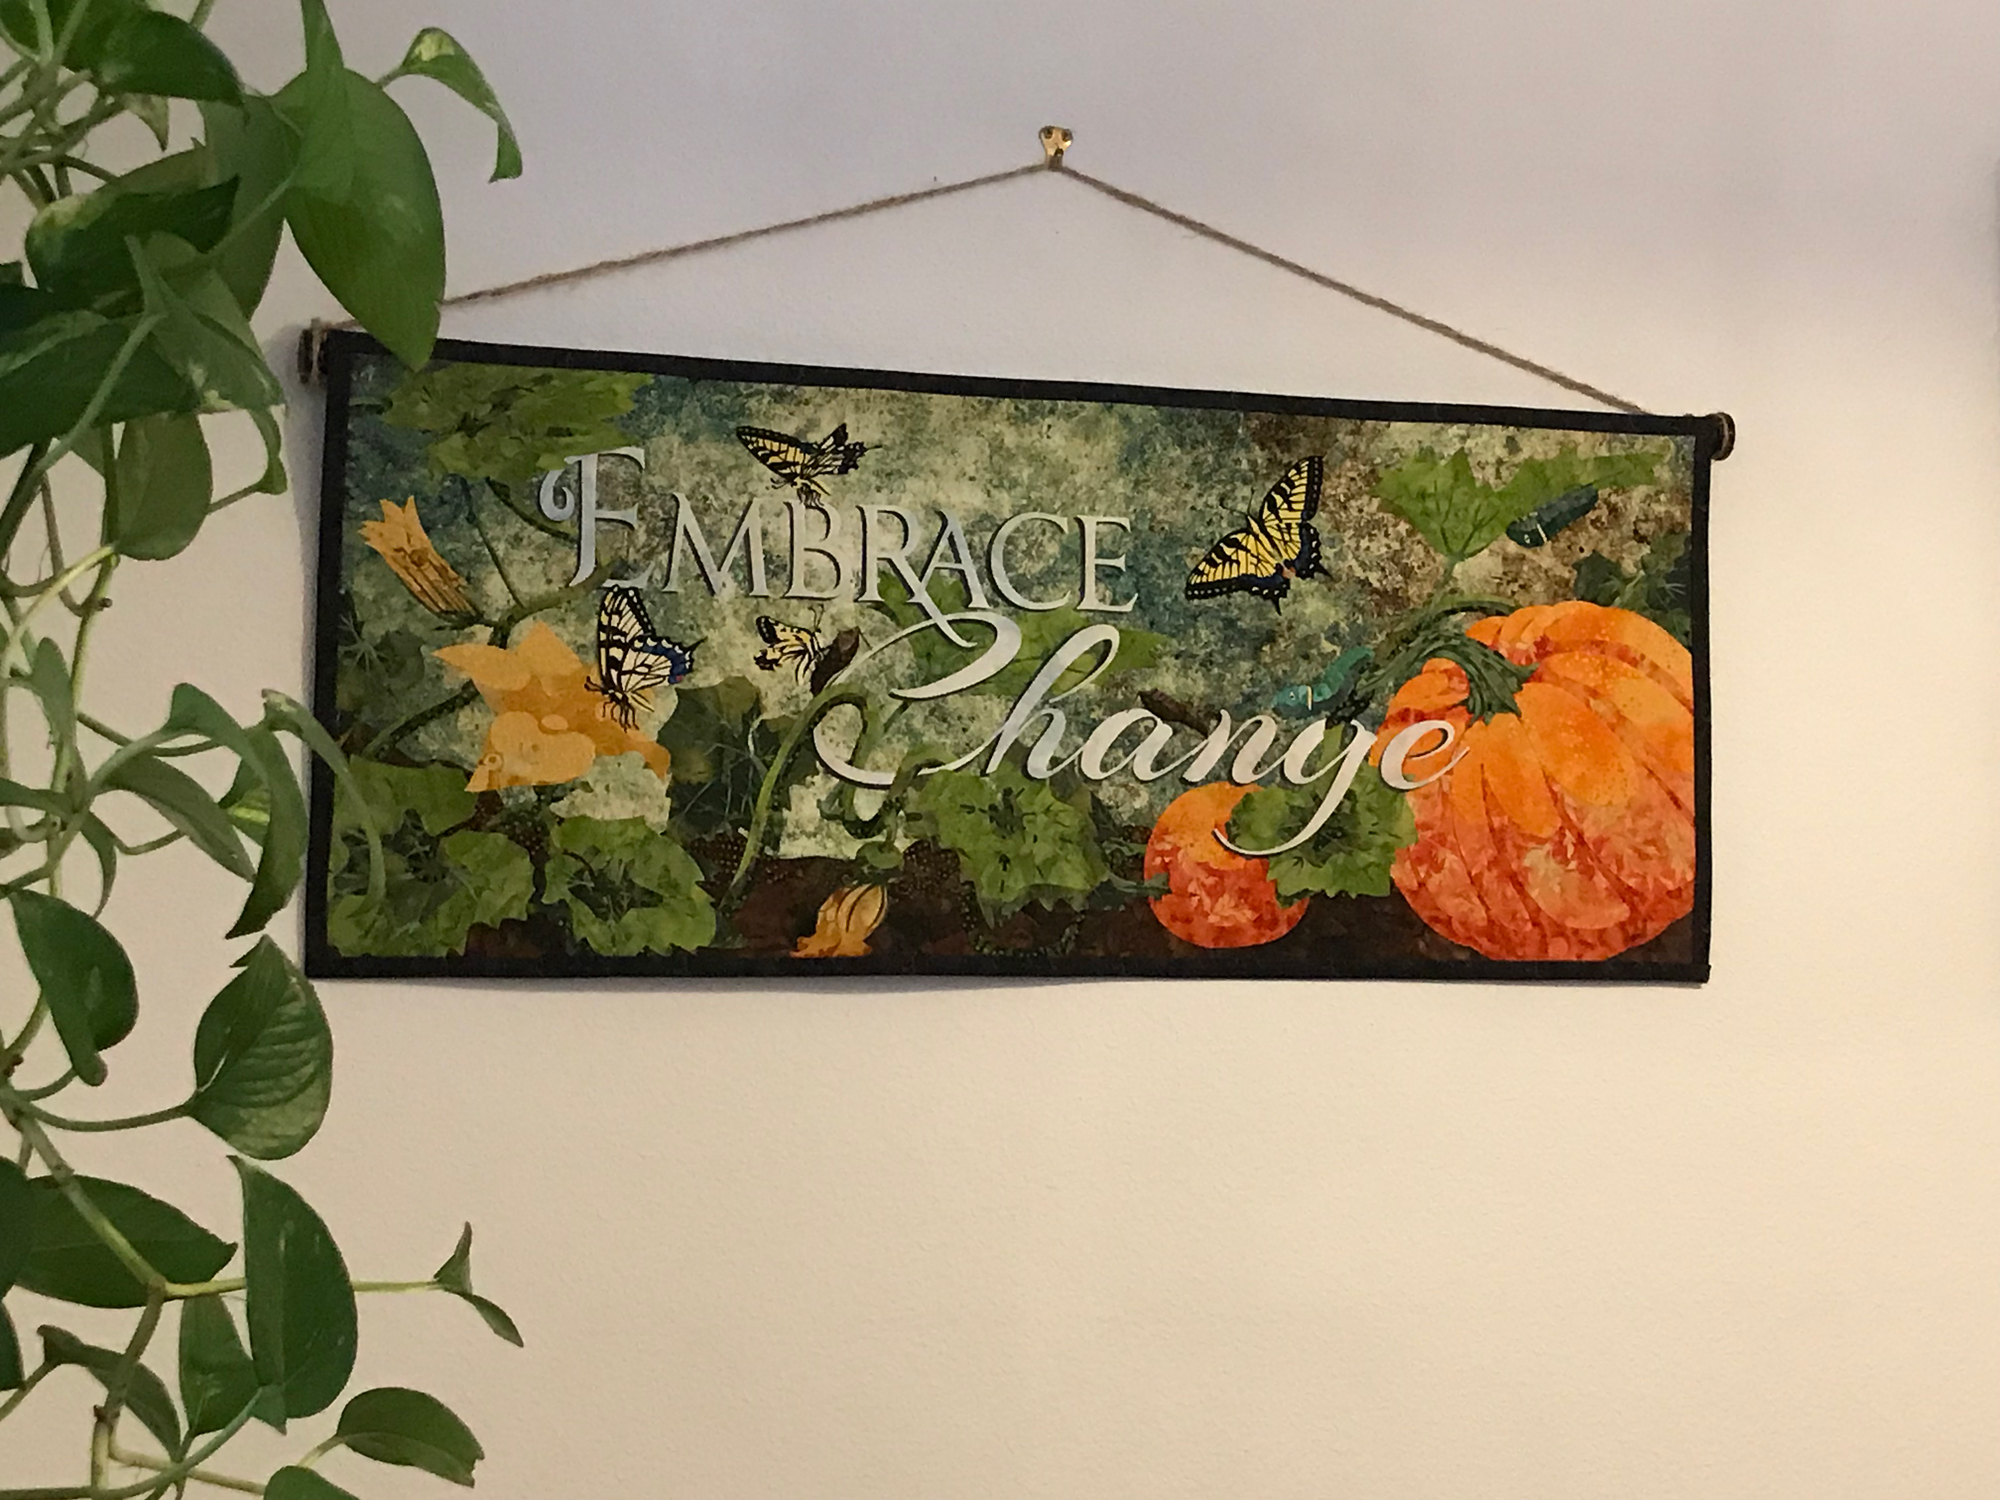 Embrace Change Wall Hanging